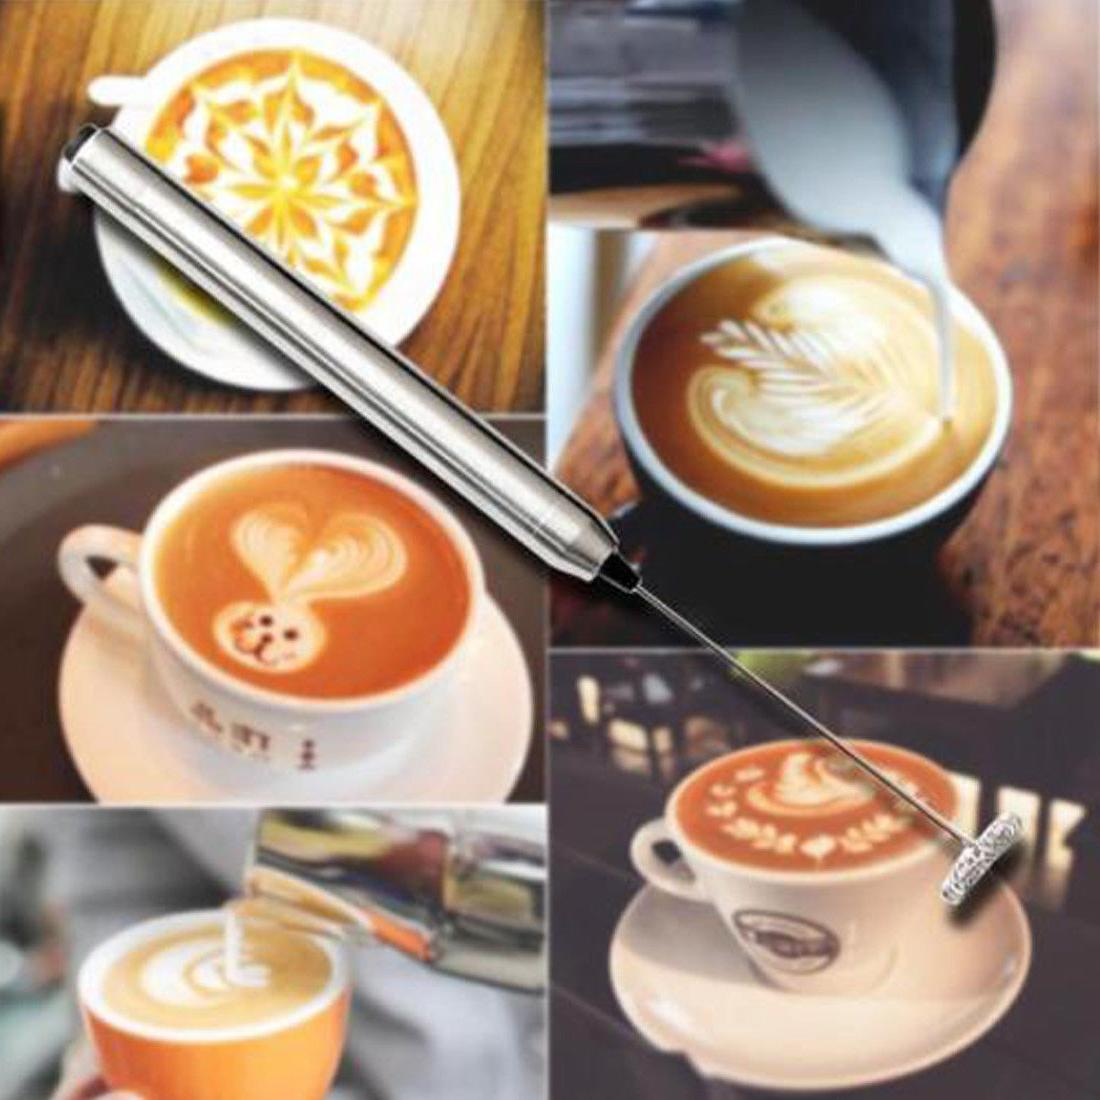 stainless steel electric slim handheld milk frother